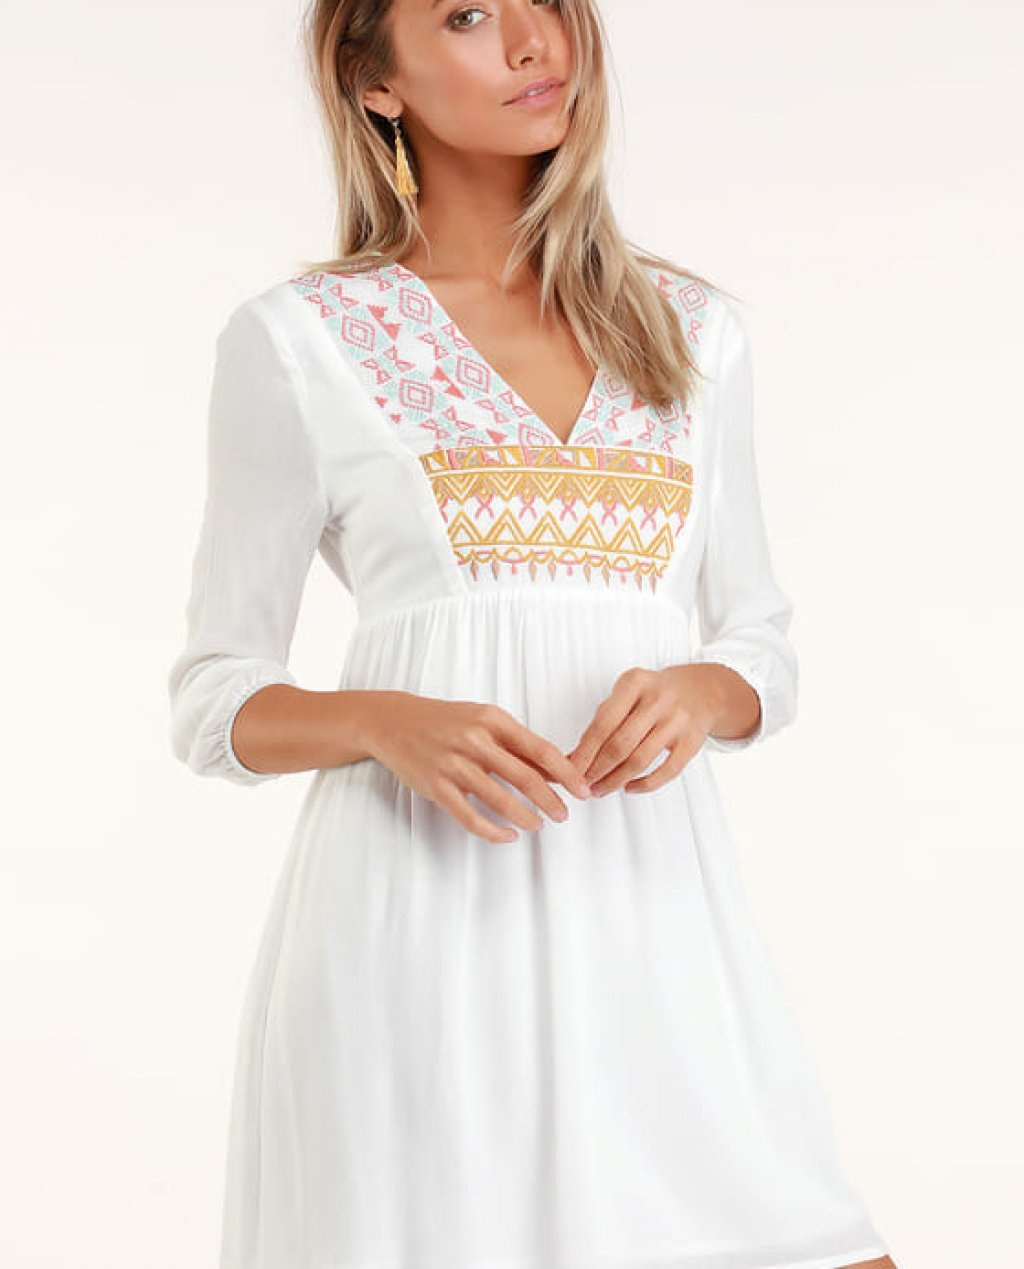 Sunflower White Embroidered Babydoll Dress